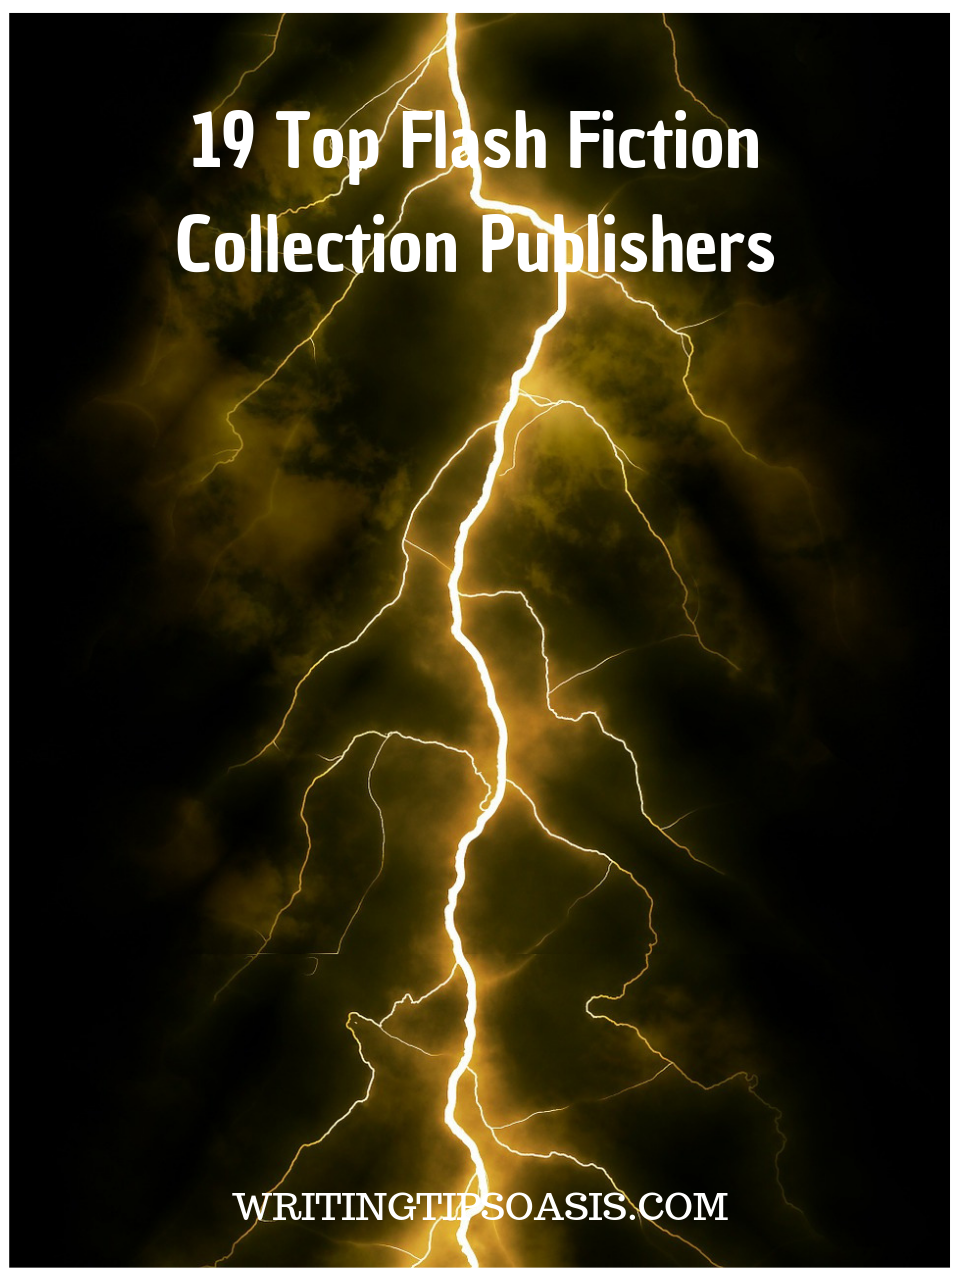 publishers of flash fiction